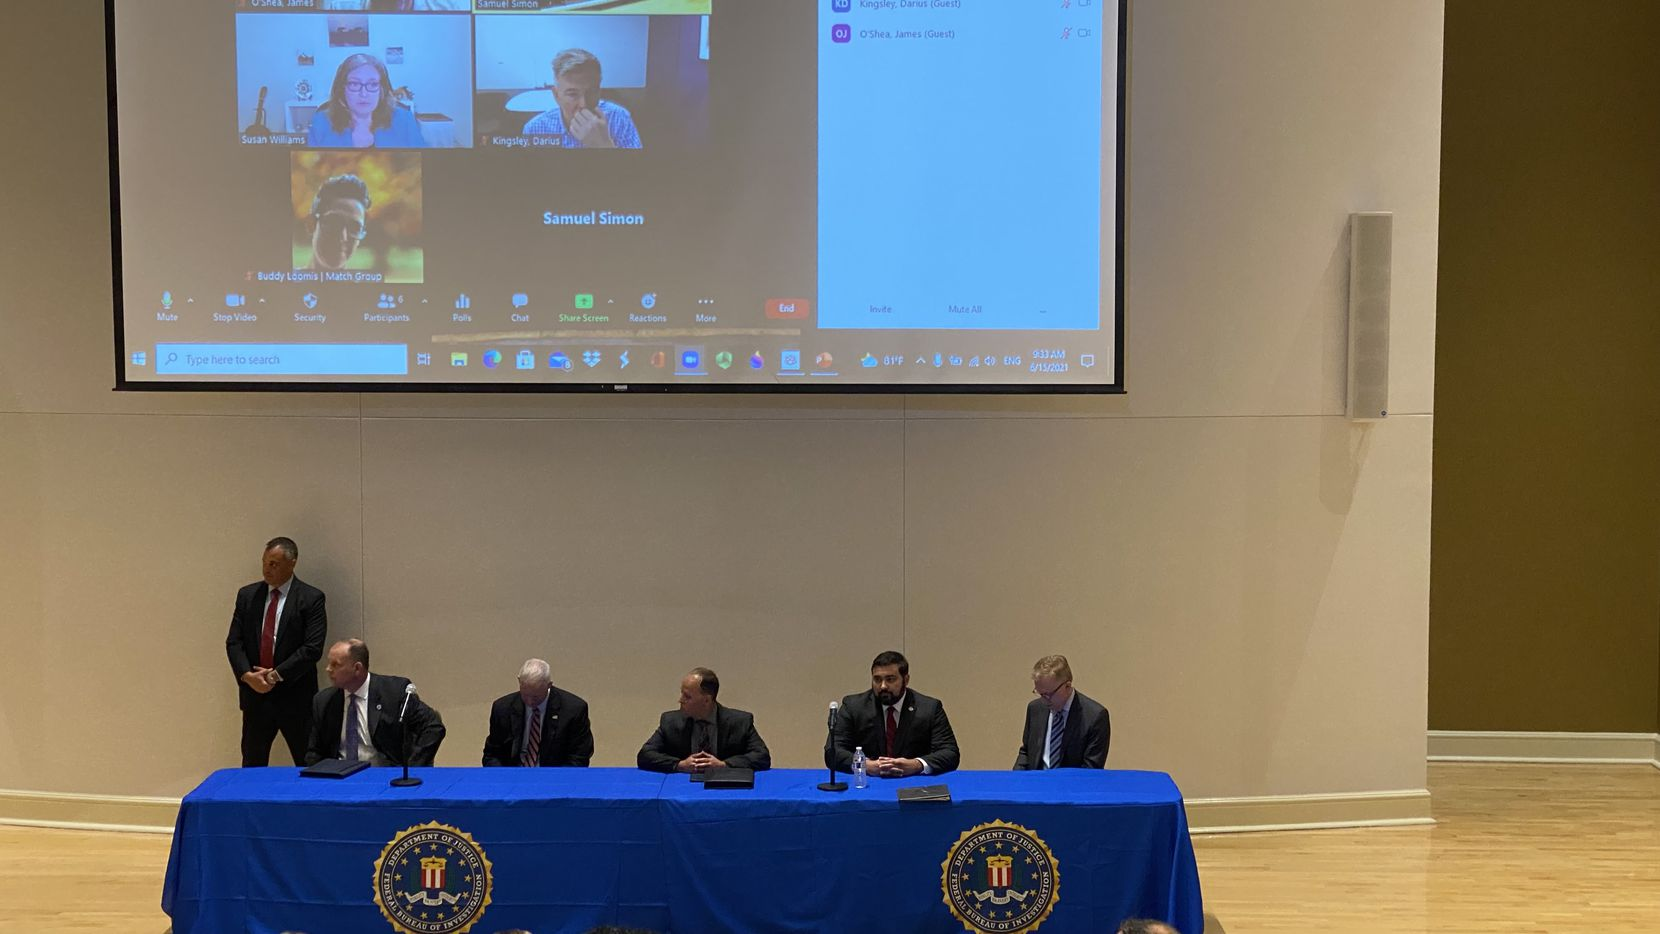 Branches of the U.S. Departments of Justice and Treasury, including the FBI, Secret Service, Postal Inspection Service, U.S. Attorney's Office and Social Security Administration, met at TCU to talk about protecting Americans from scams.